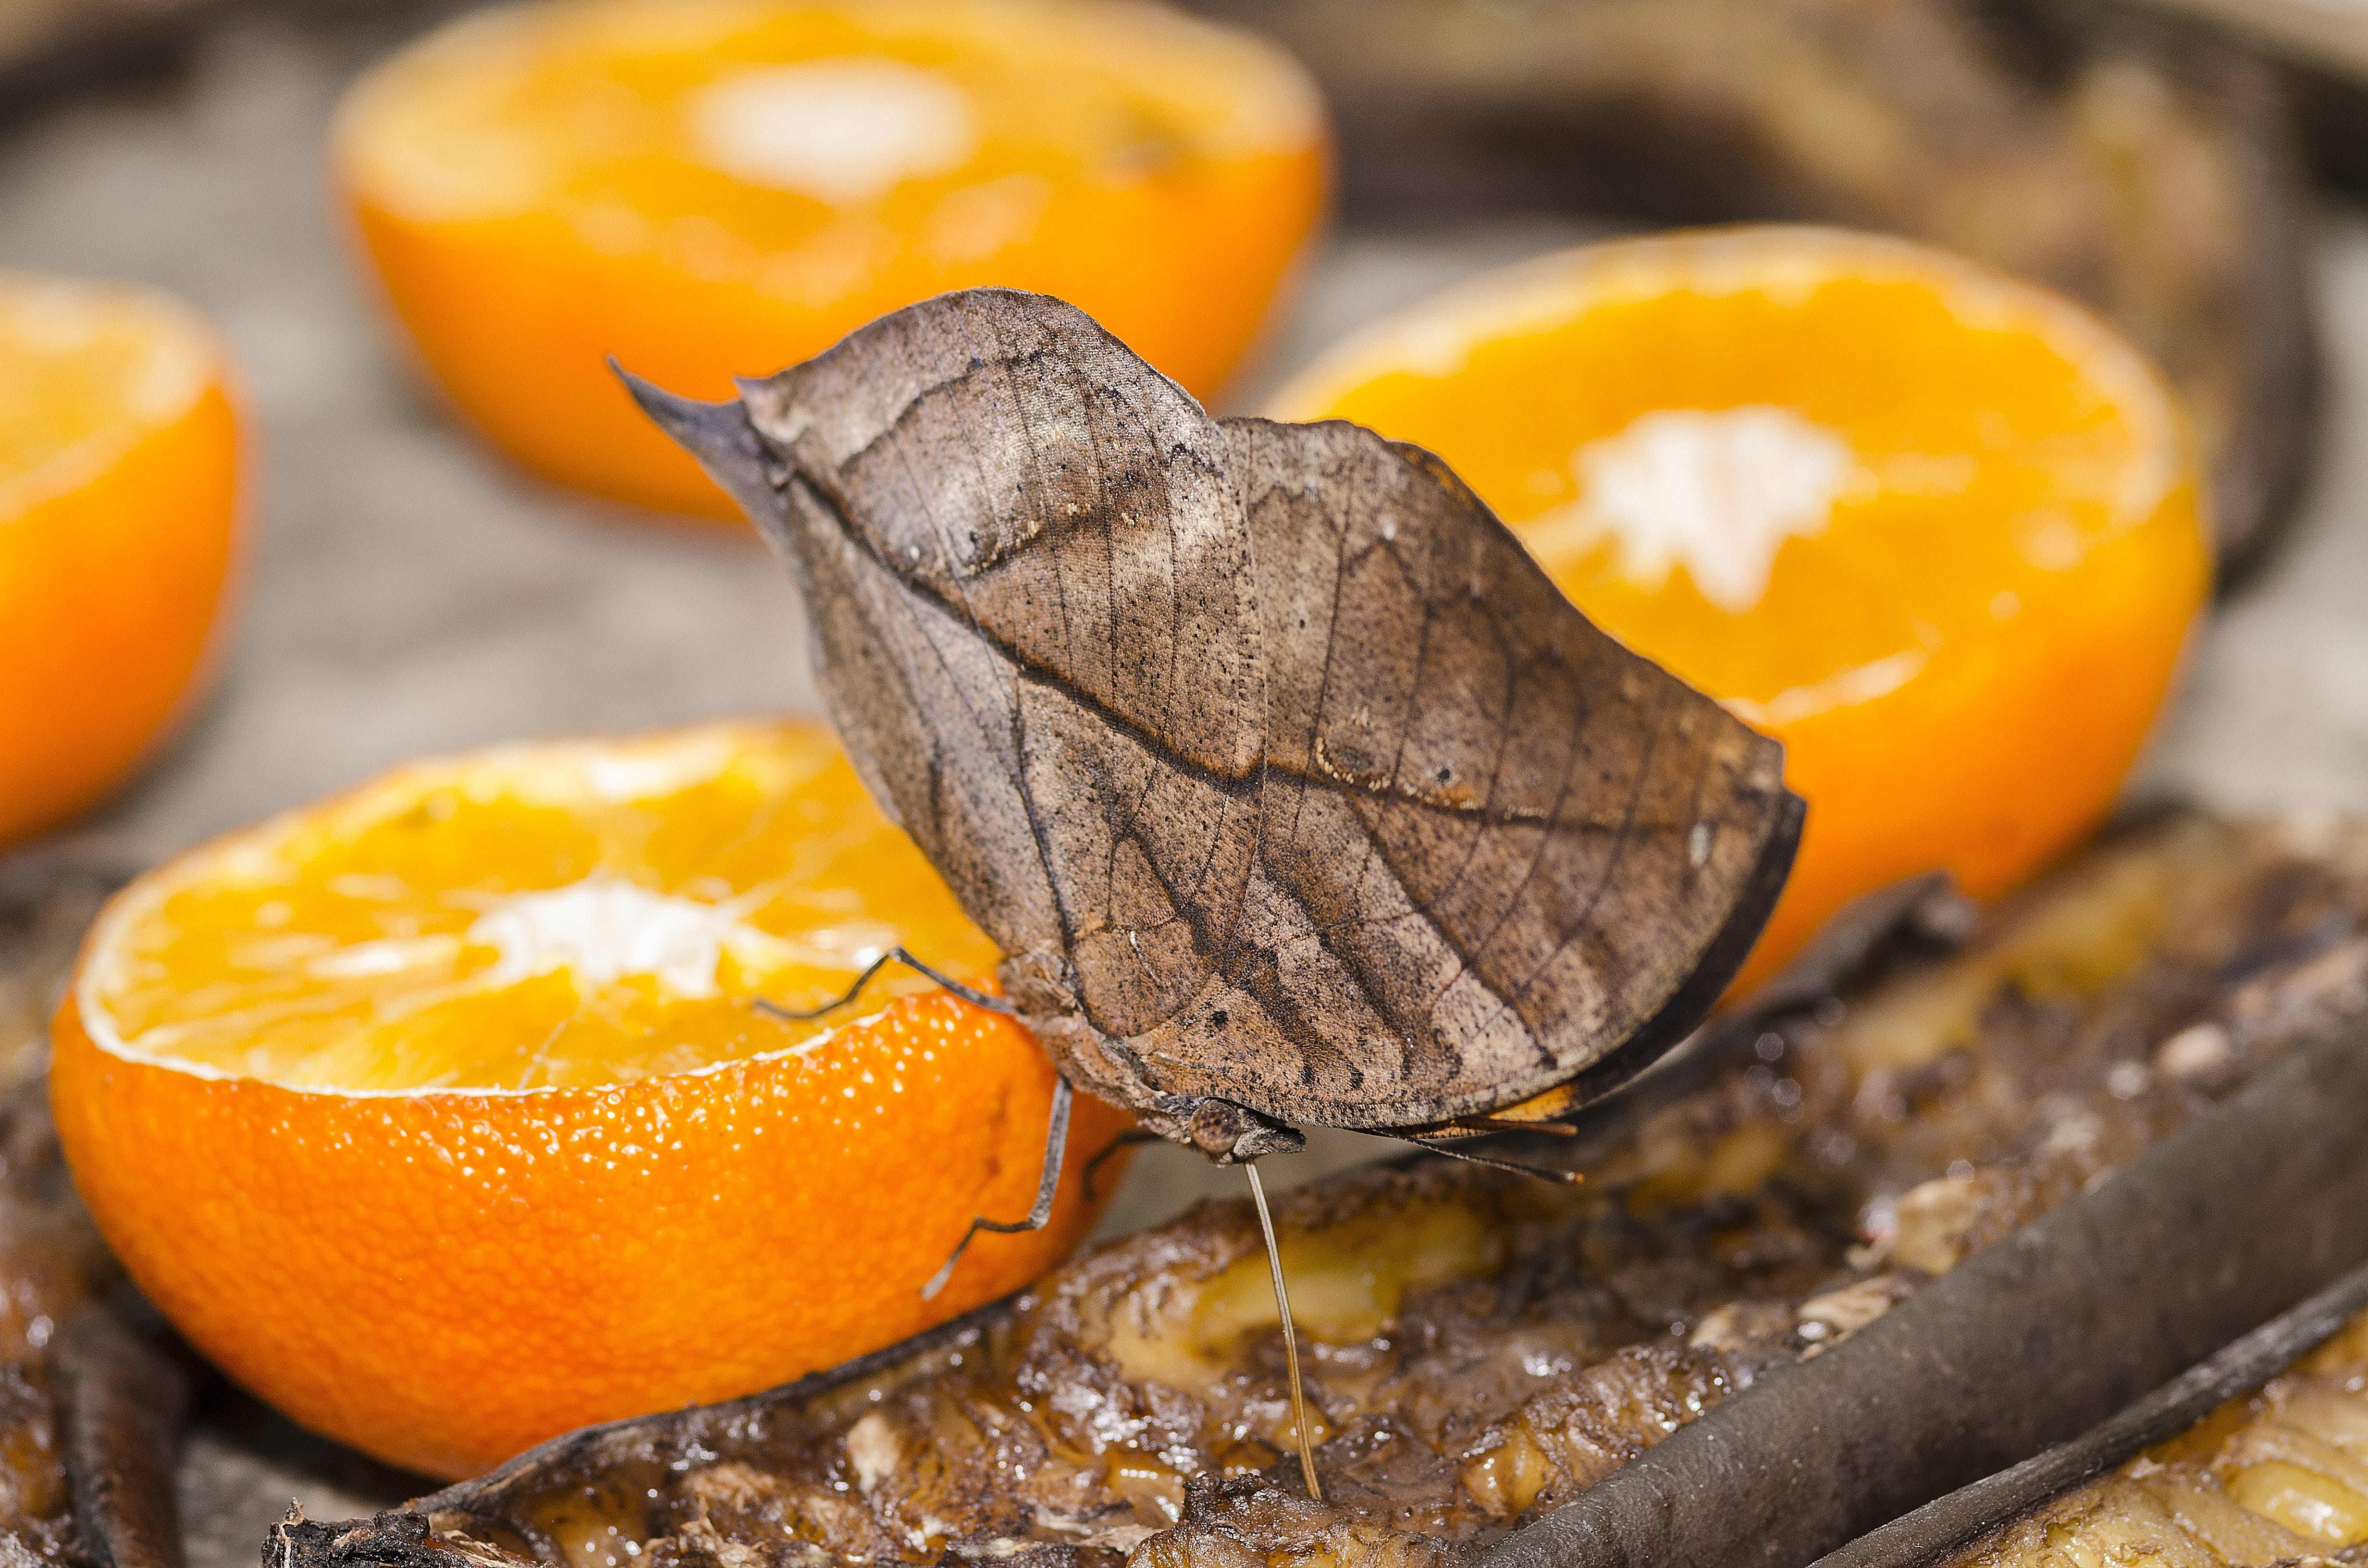 Free stock photo of nature, eating, orange, insect